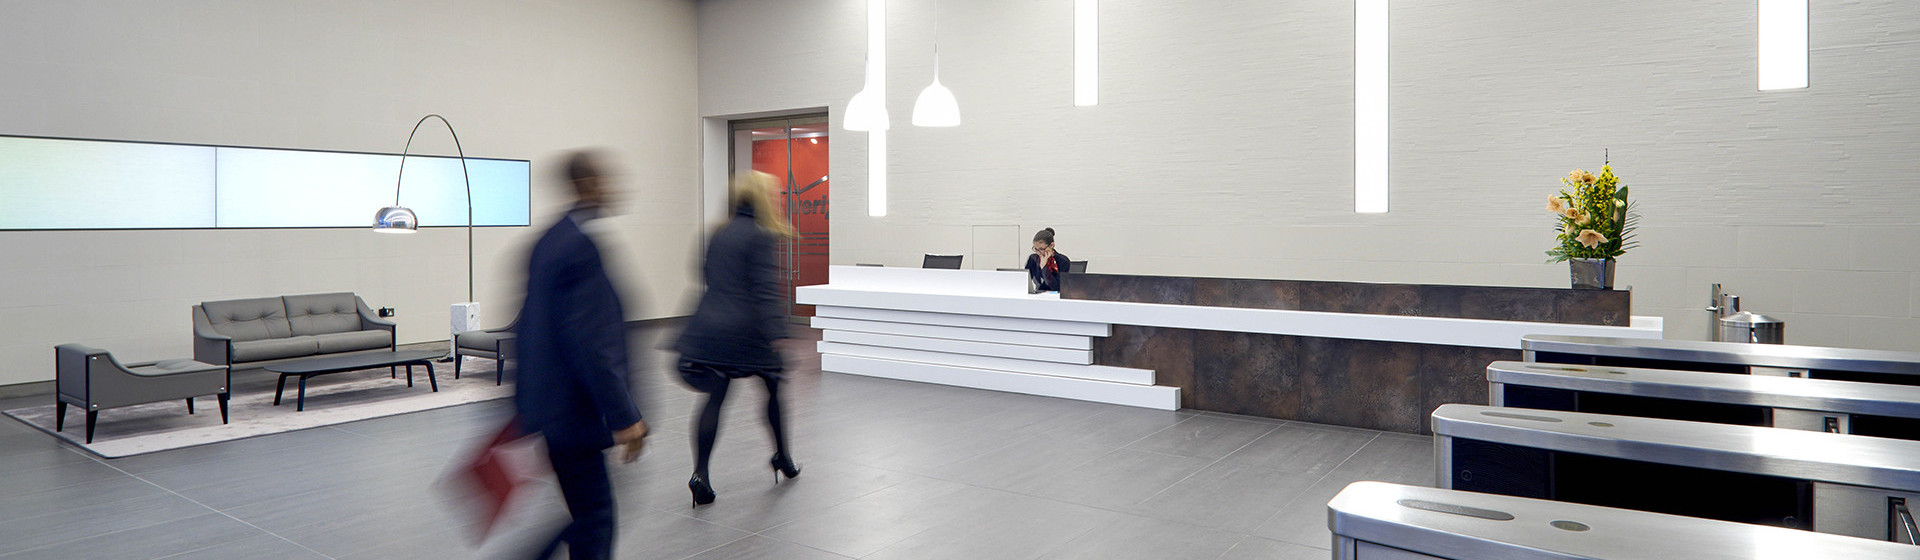 Image for 10 Fleet Place Image 2